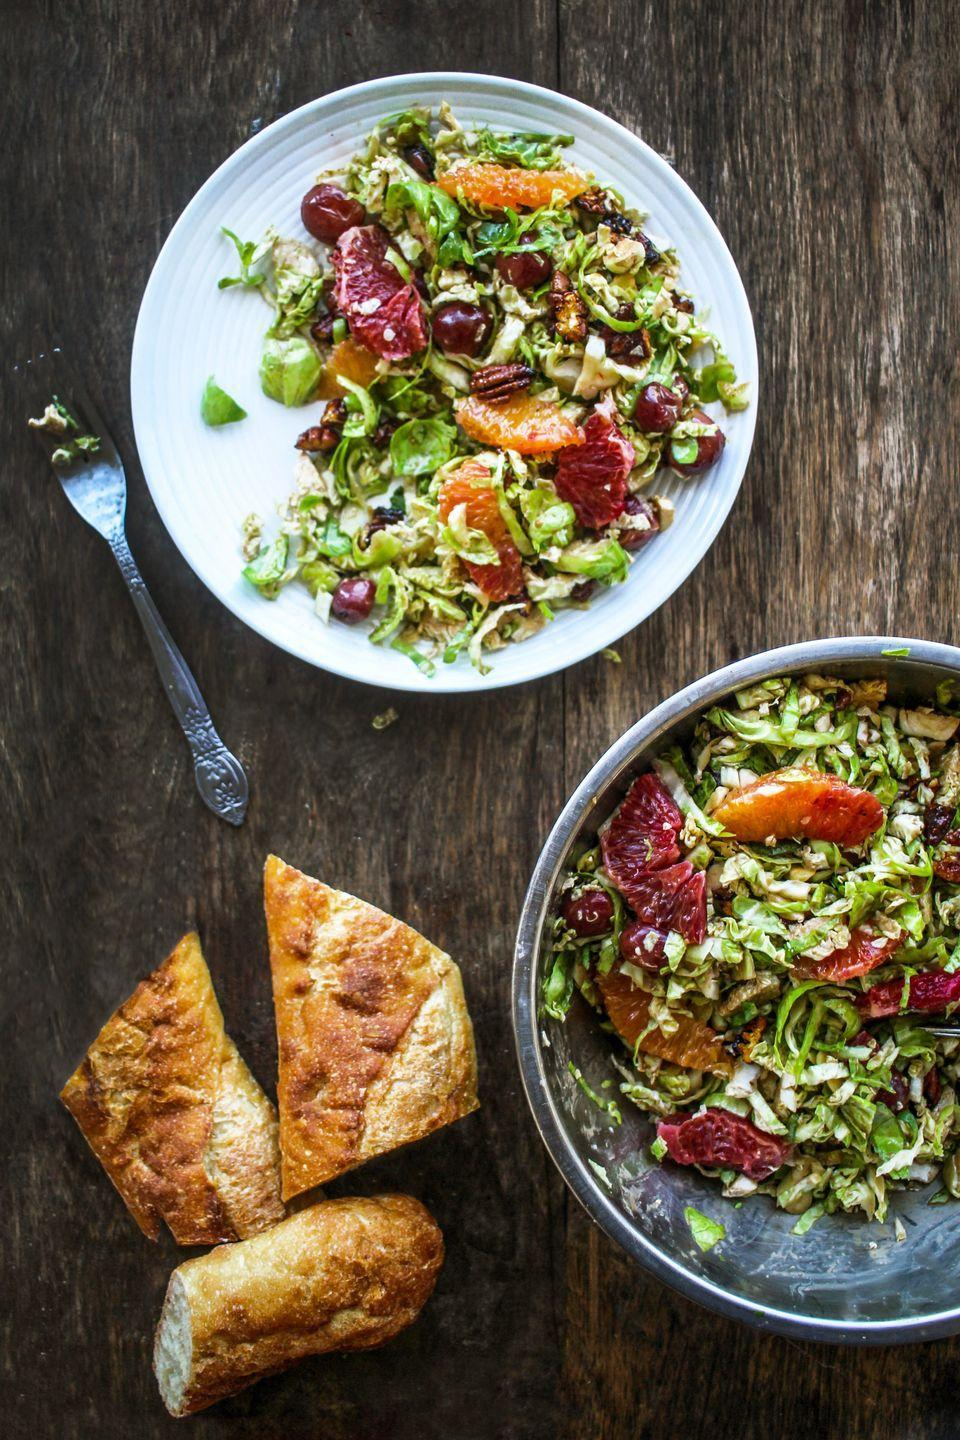 "<p>Blood oranges, pecans, and a flavorful balsamic vinaigrette make this salad pop—both flavor-wise and color-wise.</p><p><strong>Get the recipe at <a href=""https://www.chocolateforbasil.com/blog/massaged-winter-brussels-sprout-salad"" rel=""nofollow noopener"" target=""_blank"" data-ylk=""slk:Chocolate for Basil"" class=""link rapid-noclick-resp"">Chocolate for Basil</a>.</strong></p><p><strong><a class=""link rapid-noclick-resp"" href=""https://go.redirectingat.com?id=74968X1596630&url=https%3A%2F%2Fwww.walmart.com%2Fbrowse%2Fhome%2Fserveware%2Fthe-pioneer-woman%2F4044_623679_639999_2347672%3Ffacet%3Dbrand%253AThe%2BPioneer%2BWoman&sref=https%3A%2F%2Fwww.thepioneerwoman.com%2Ffood-cooking%2Fmeals-menus%2Fg33251890%2Fbest-thanksgiving-sides%2F"" rel=""nofollow noopener"" target=""_blank"" data-ylk=""slk:SHOP SERVING BOWLS"">SHOP SERVING BOWLS</a><br></strong></p>"